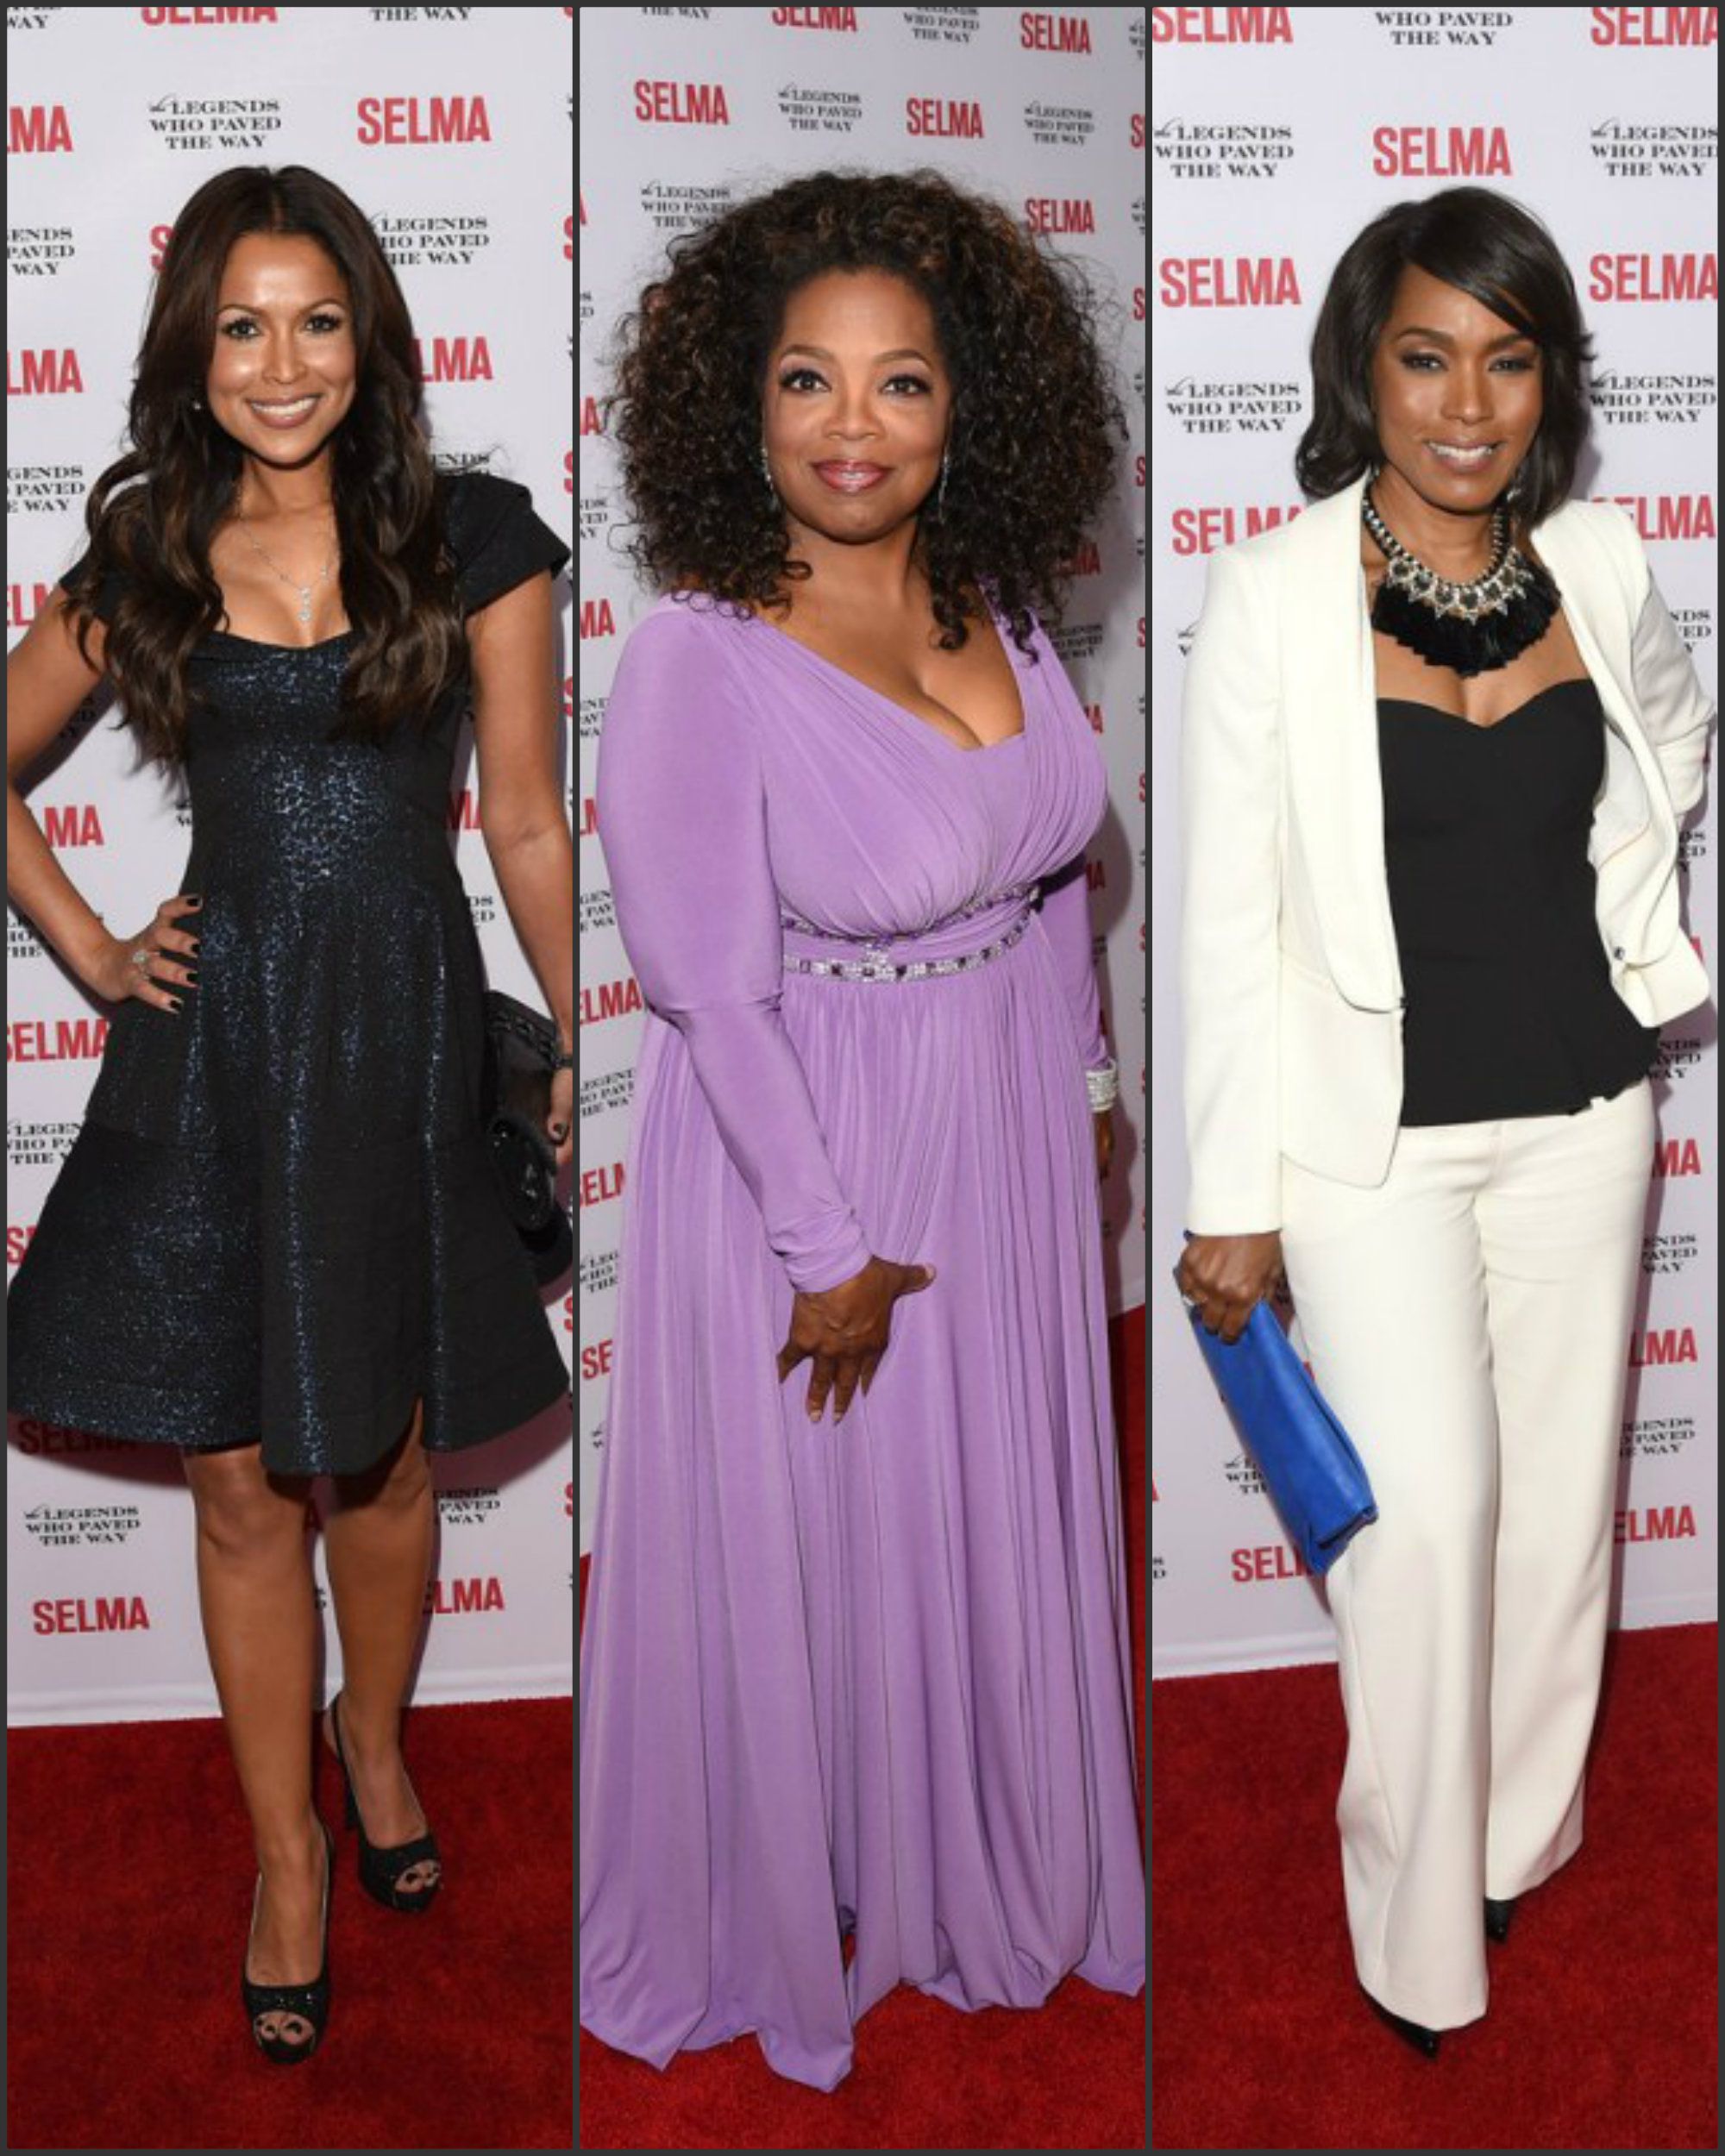 The-Legends-Who-Pave-The-Gala-Special-Selma-Screening